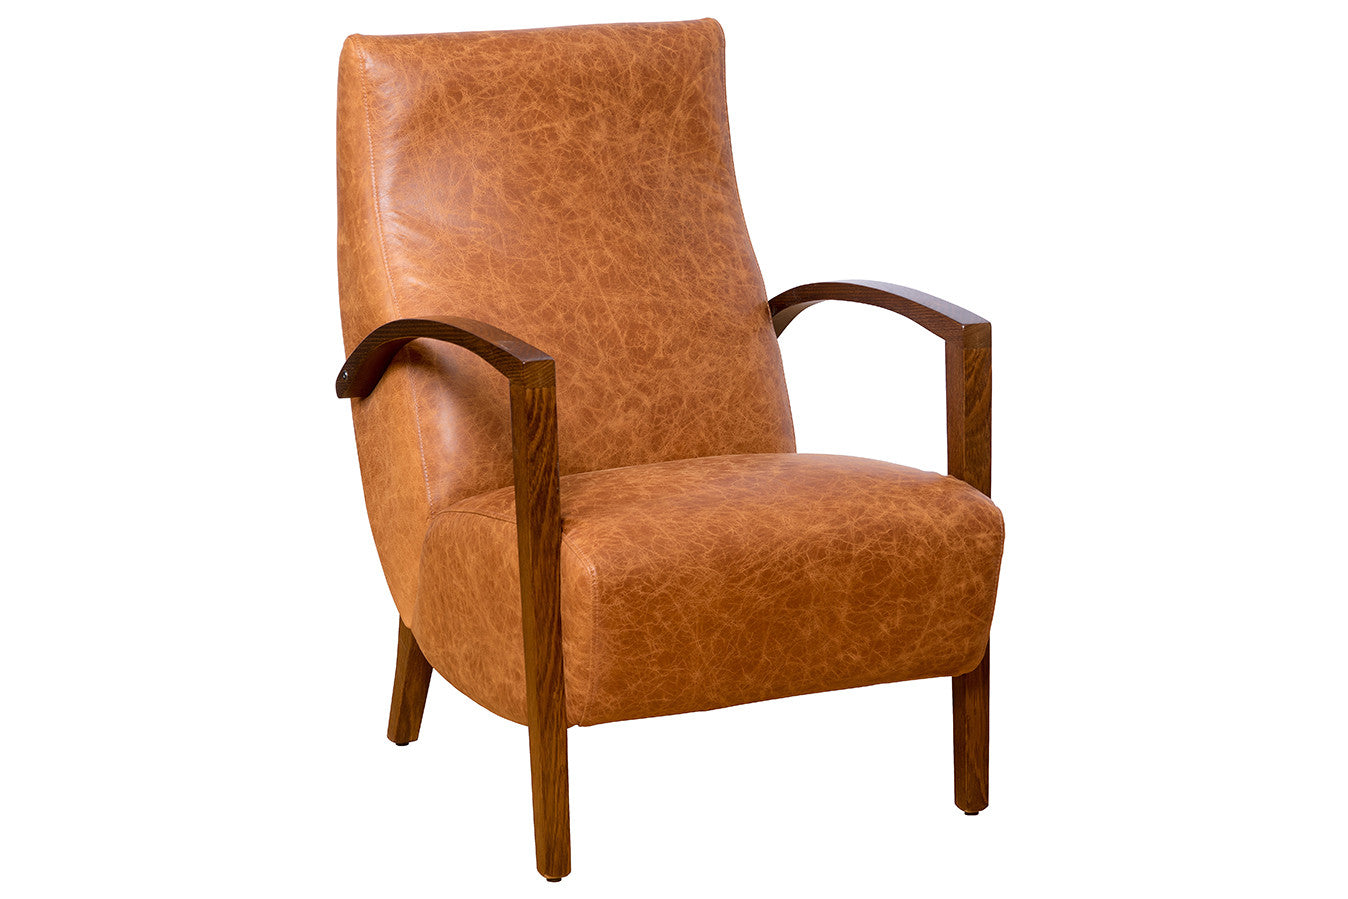 Vintage Leather Upholstered Retro Pelle Occasional Chair  Bespoke Furniture Gallery Perth